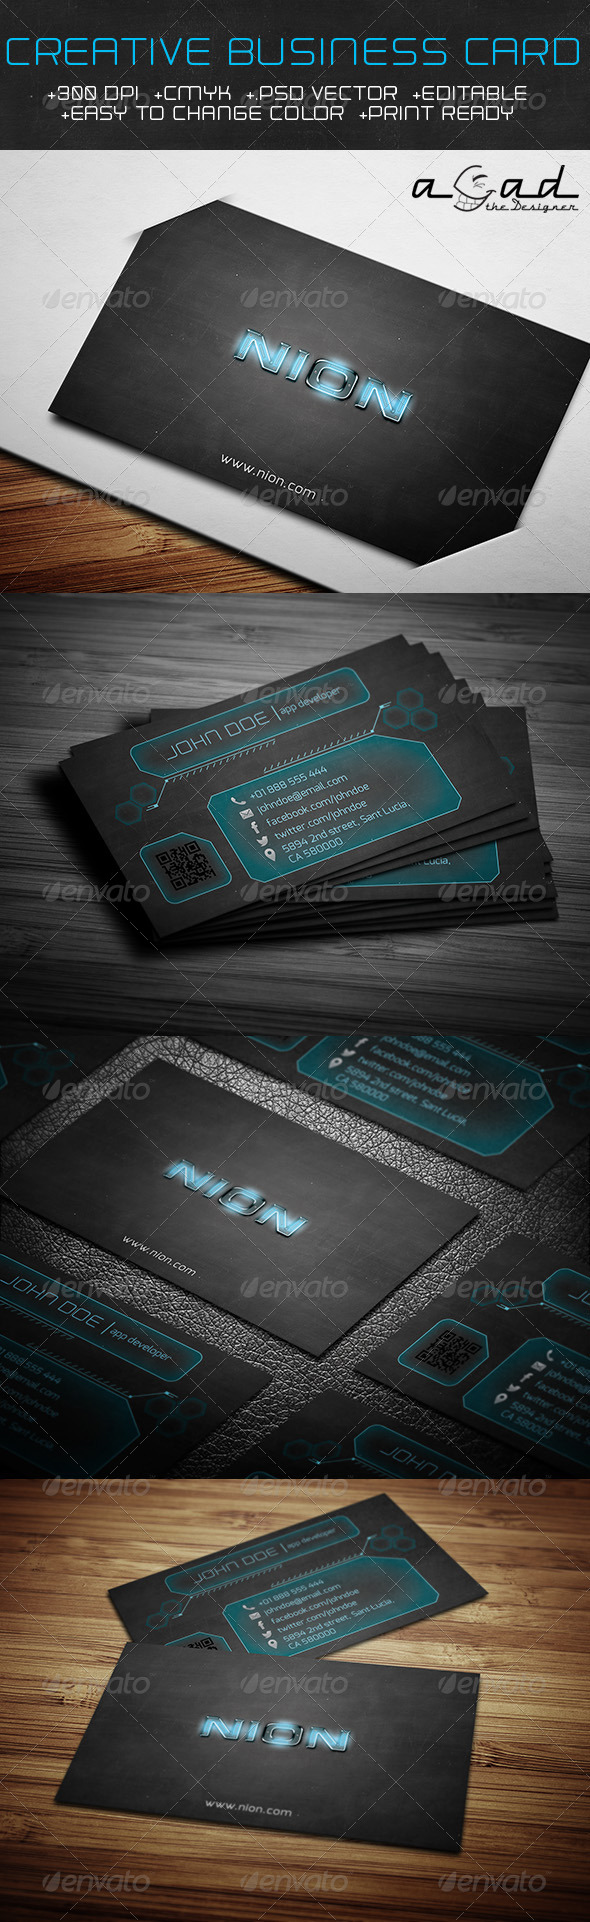 GraphicRiver Creative Business Card 6417888